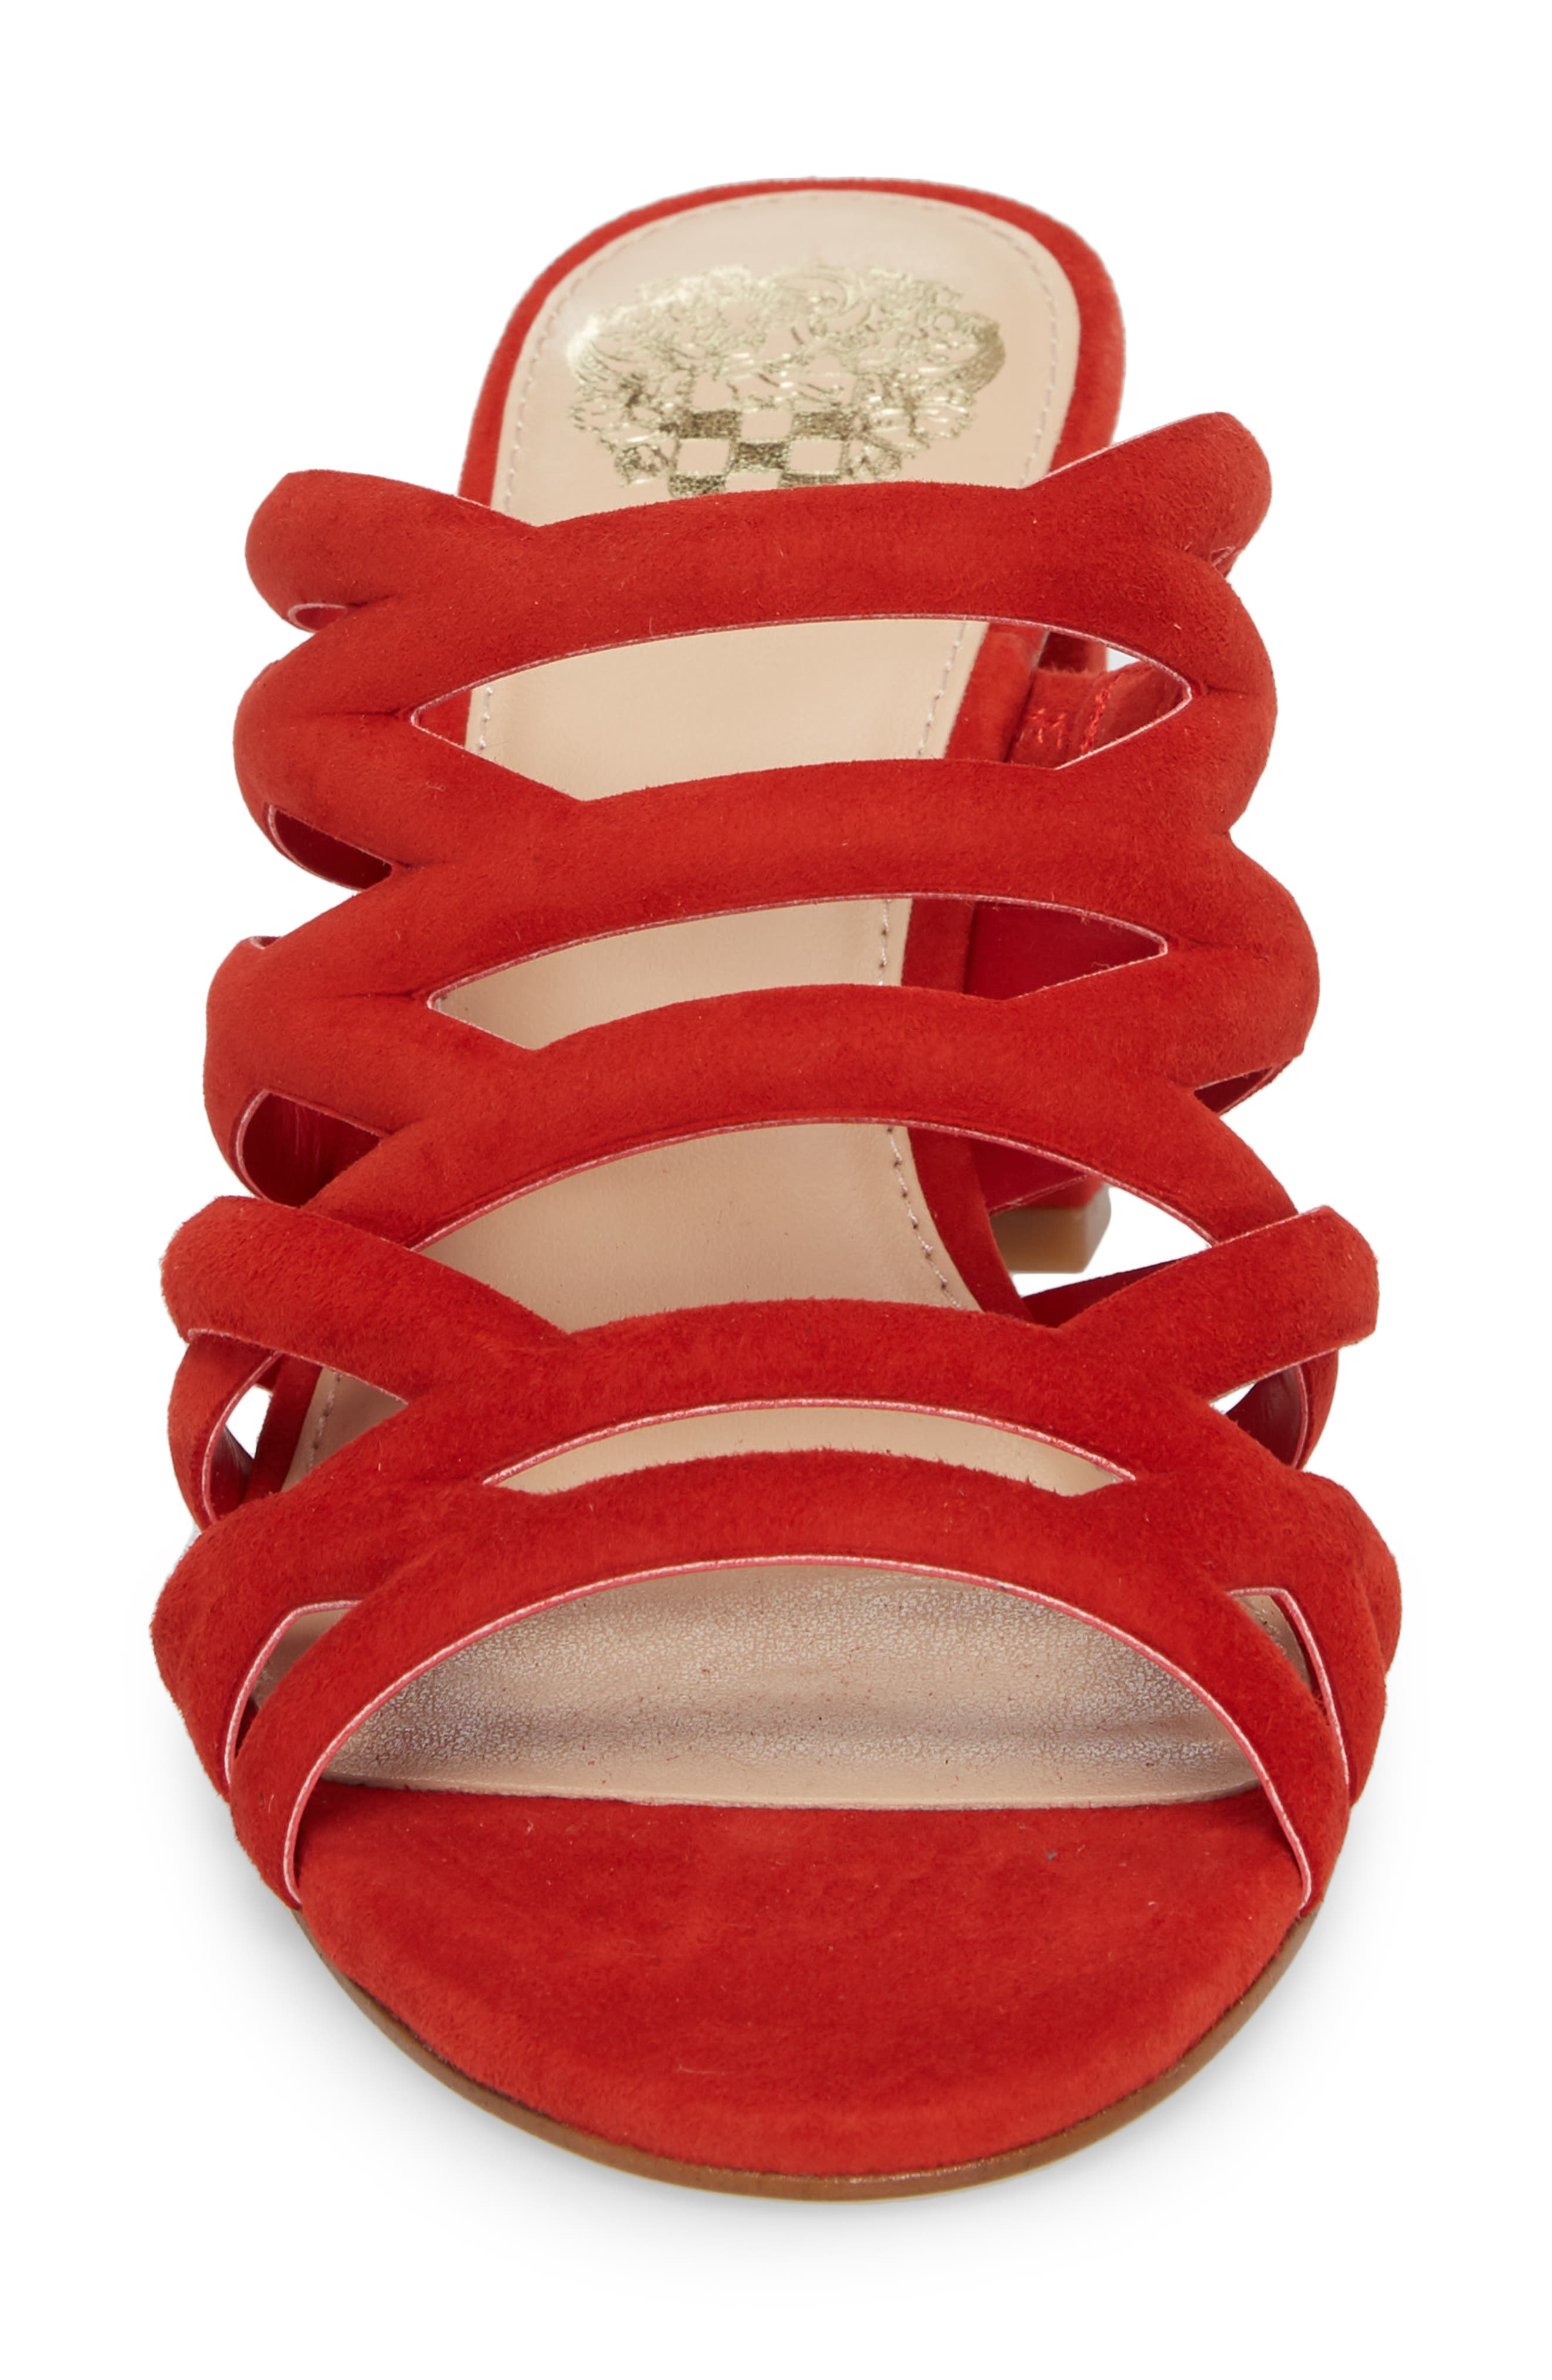 Raveana Cage Mule,                             Alternate thumbnail 4, color,                             Red Hot Rio Suede